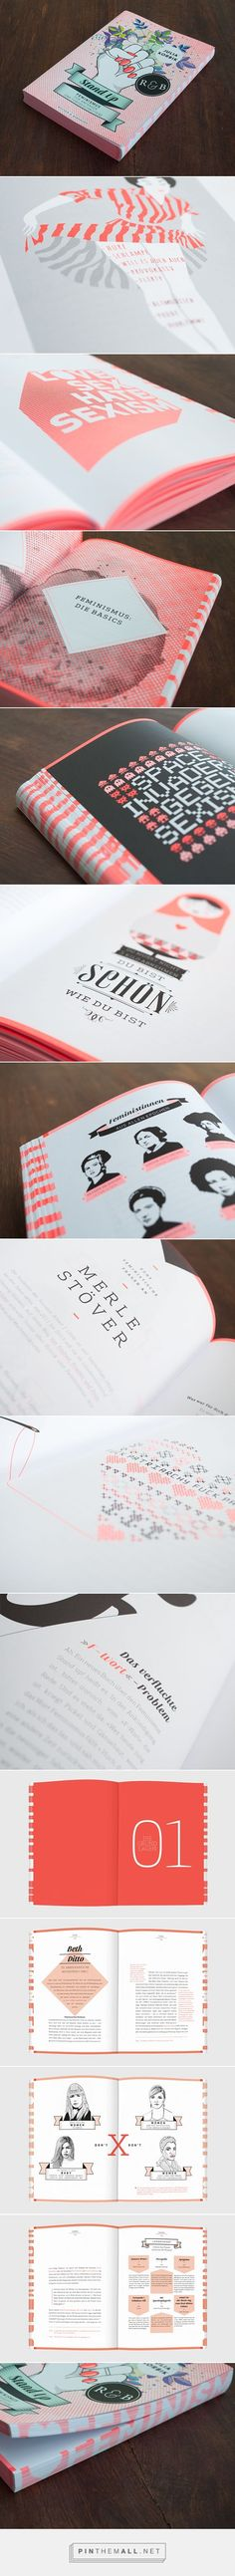 Stand Up by Studio Grau, a handbook on feminism. Fantastic editorial design.... - a grouped images picture - Pin Them All